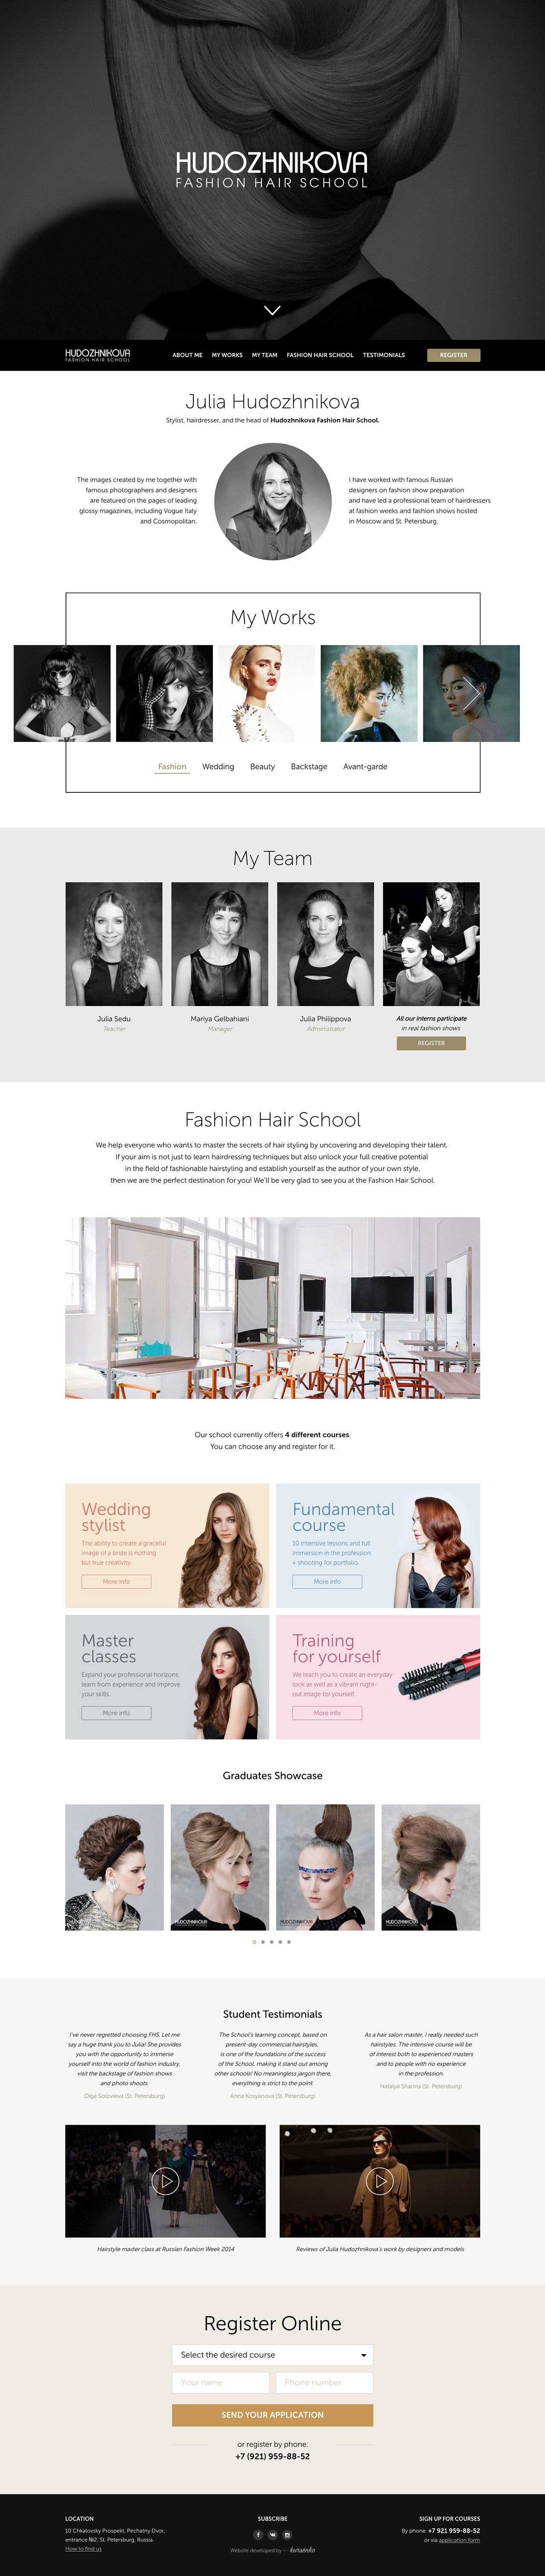 Hudozhnikova Fashion Hair School Website Screenshot